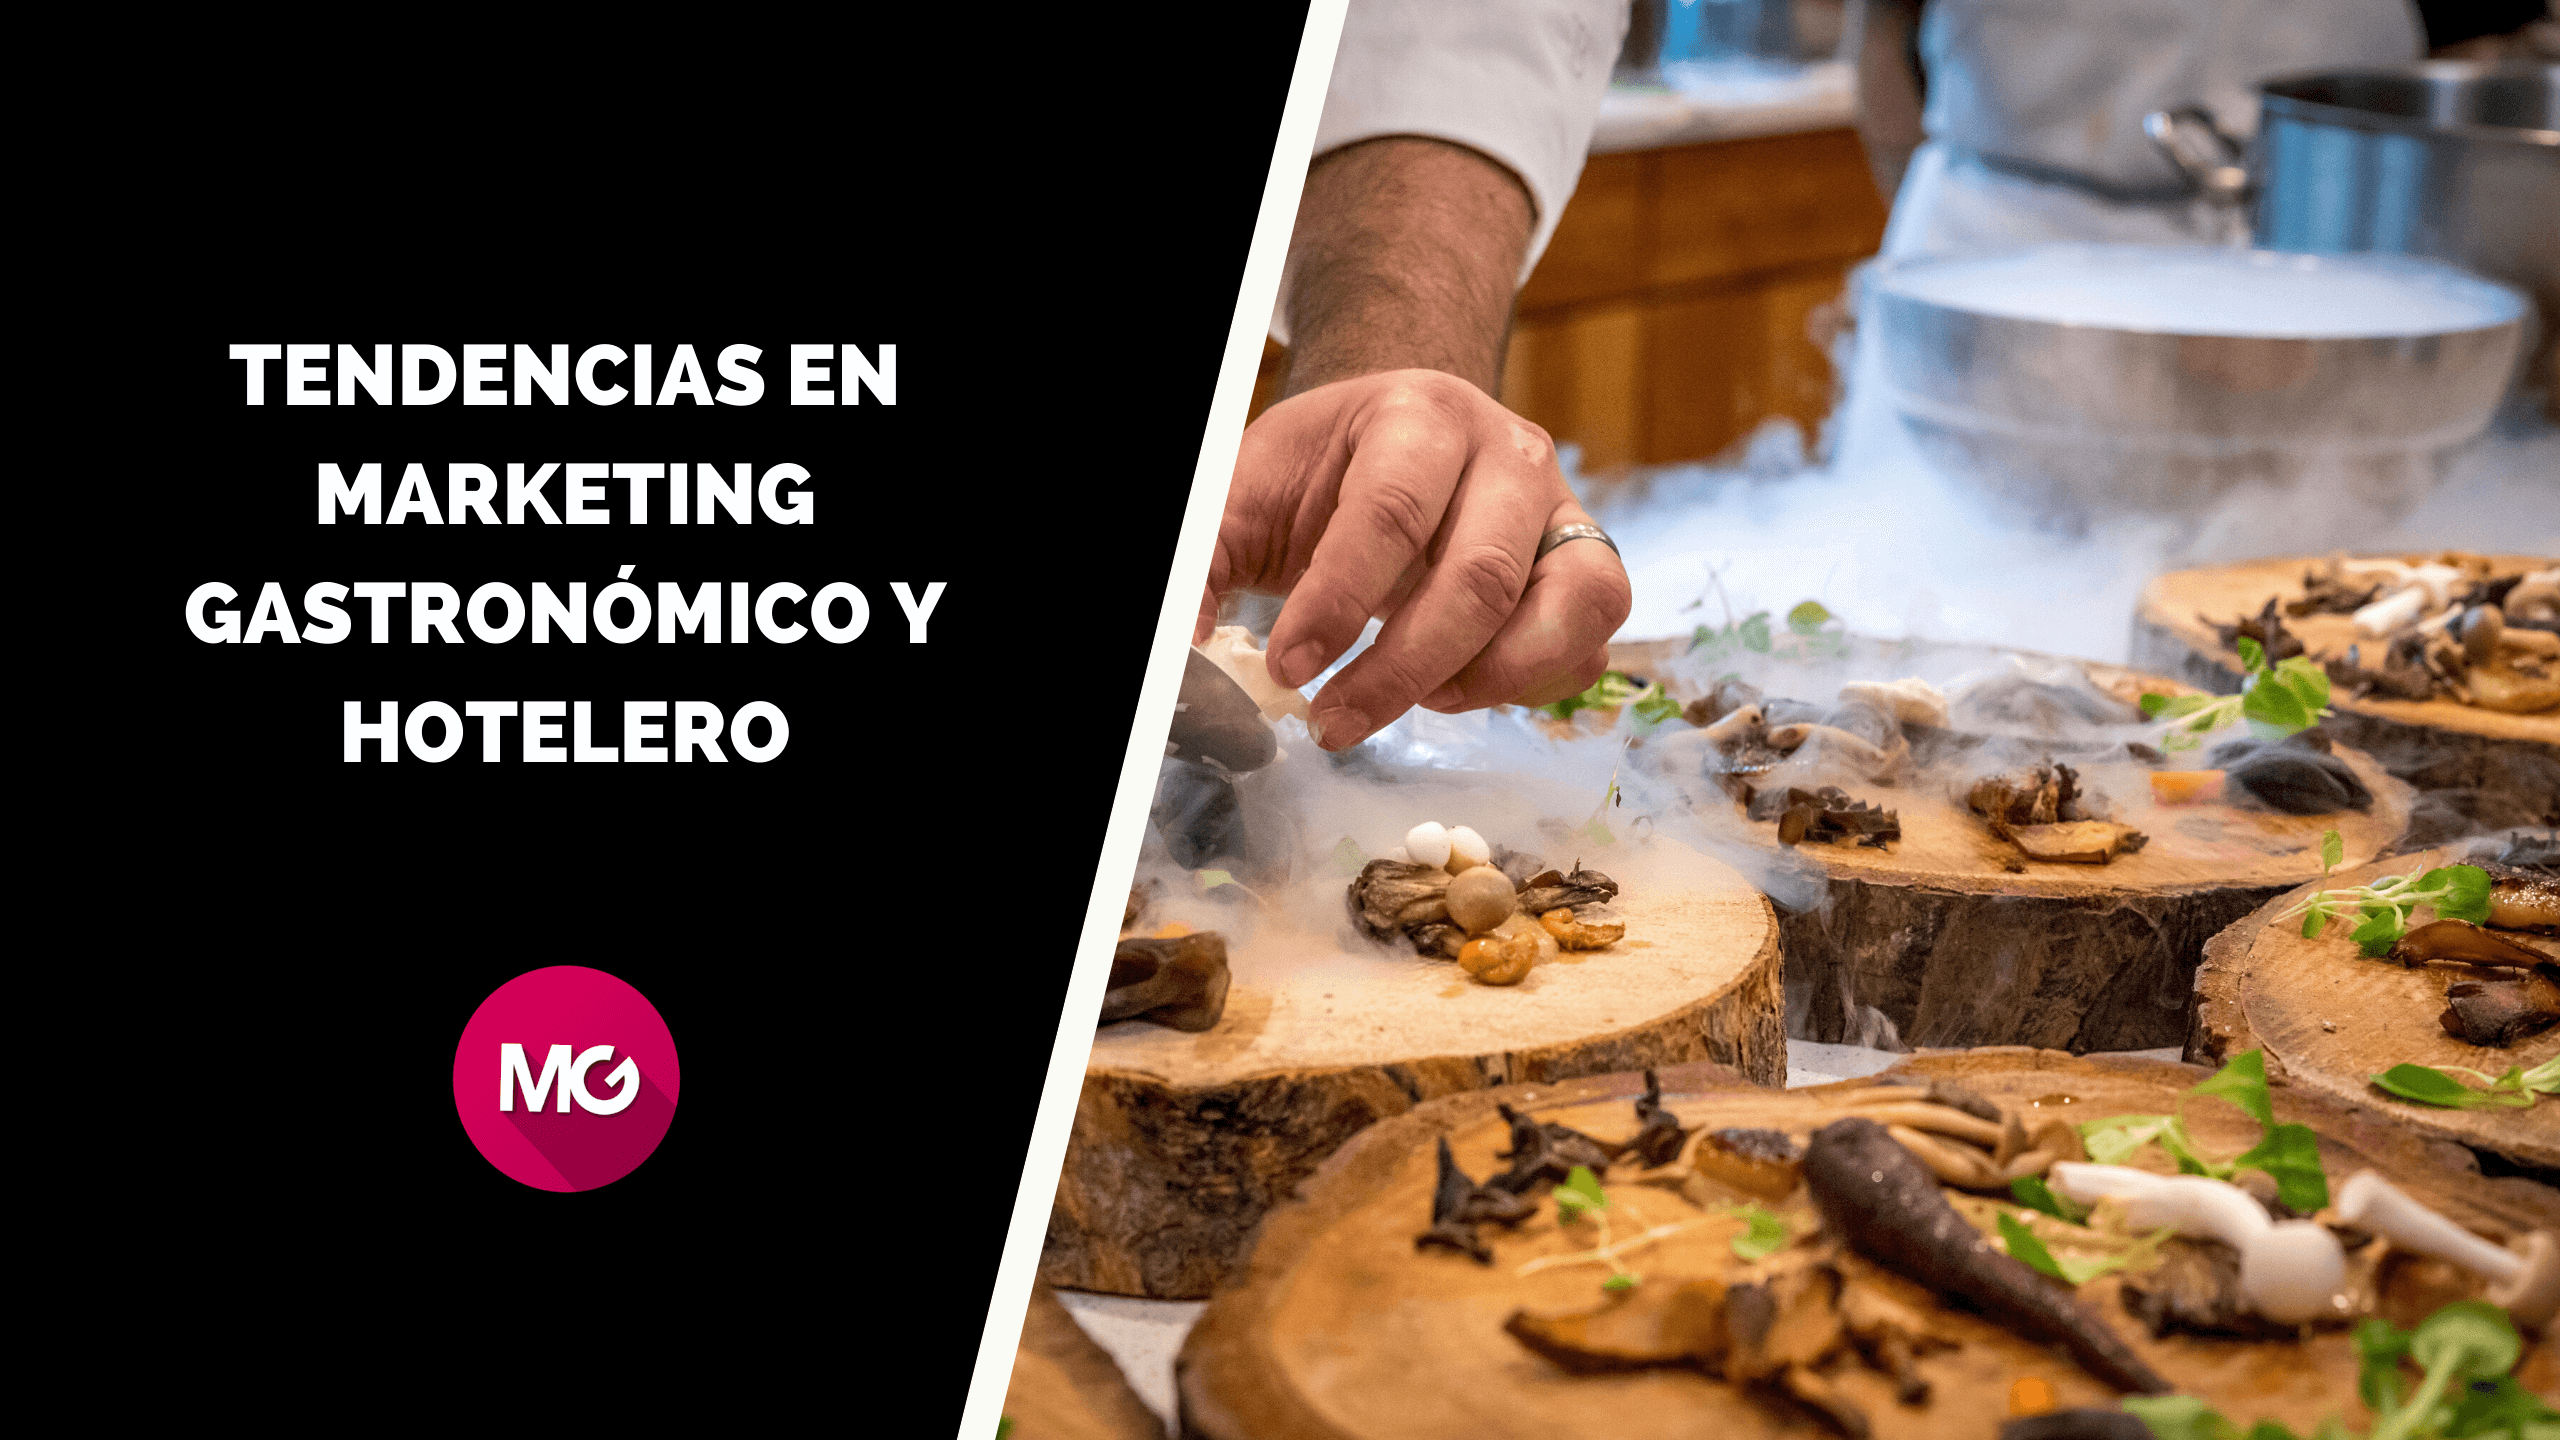 Tendencias en marketing gastronómico y hotelero (1)